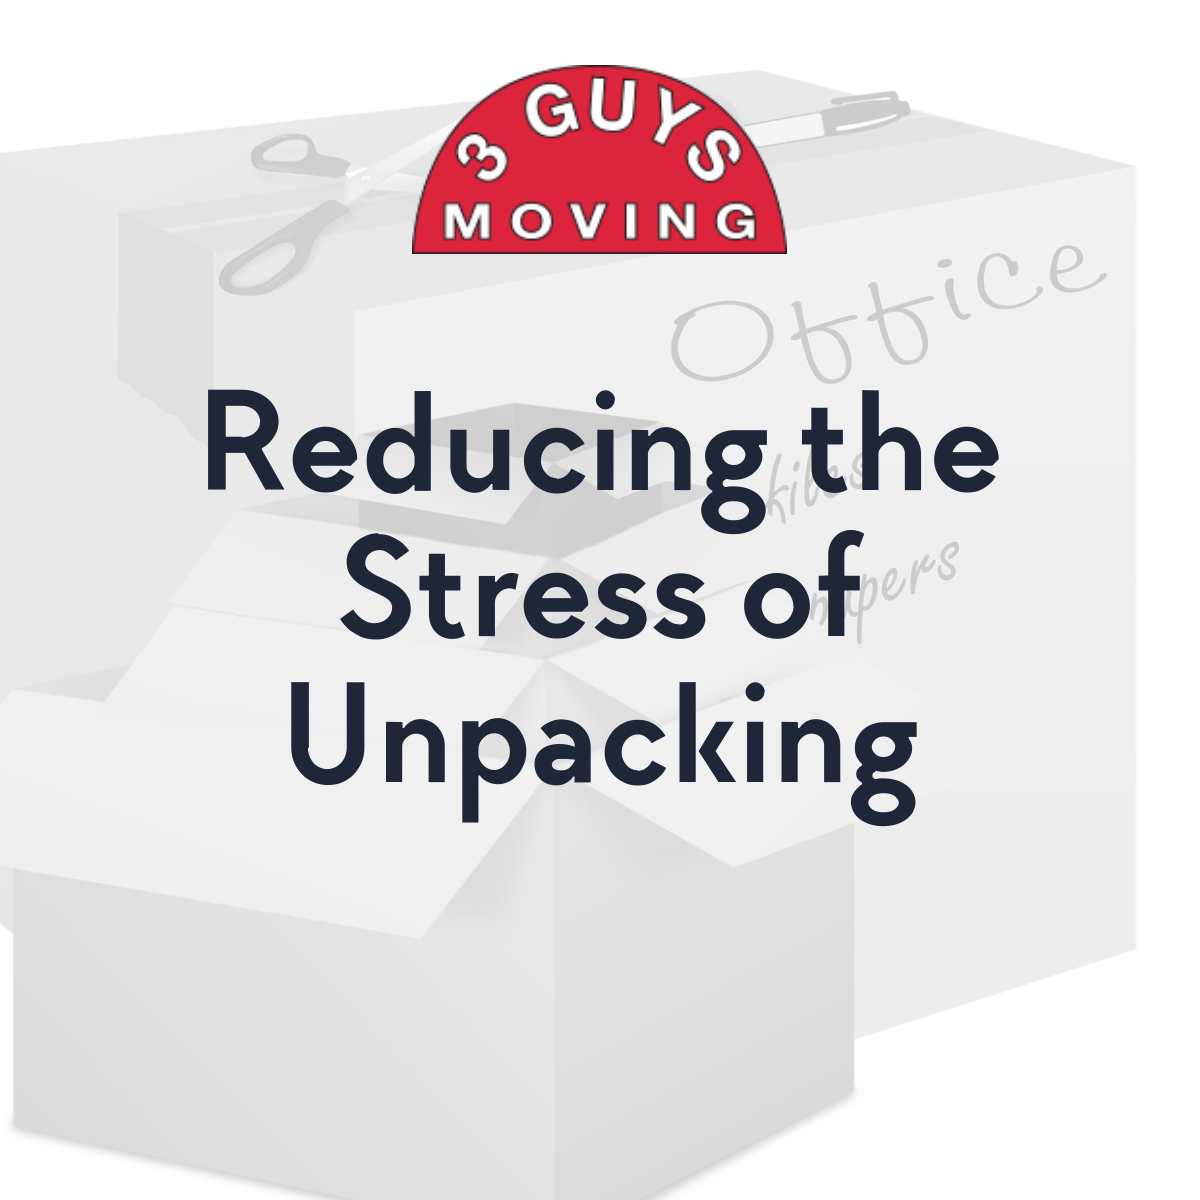 Reducing the Stress of Unpacking - Reducing the Stress of Unpacking